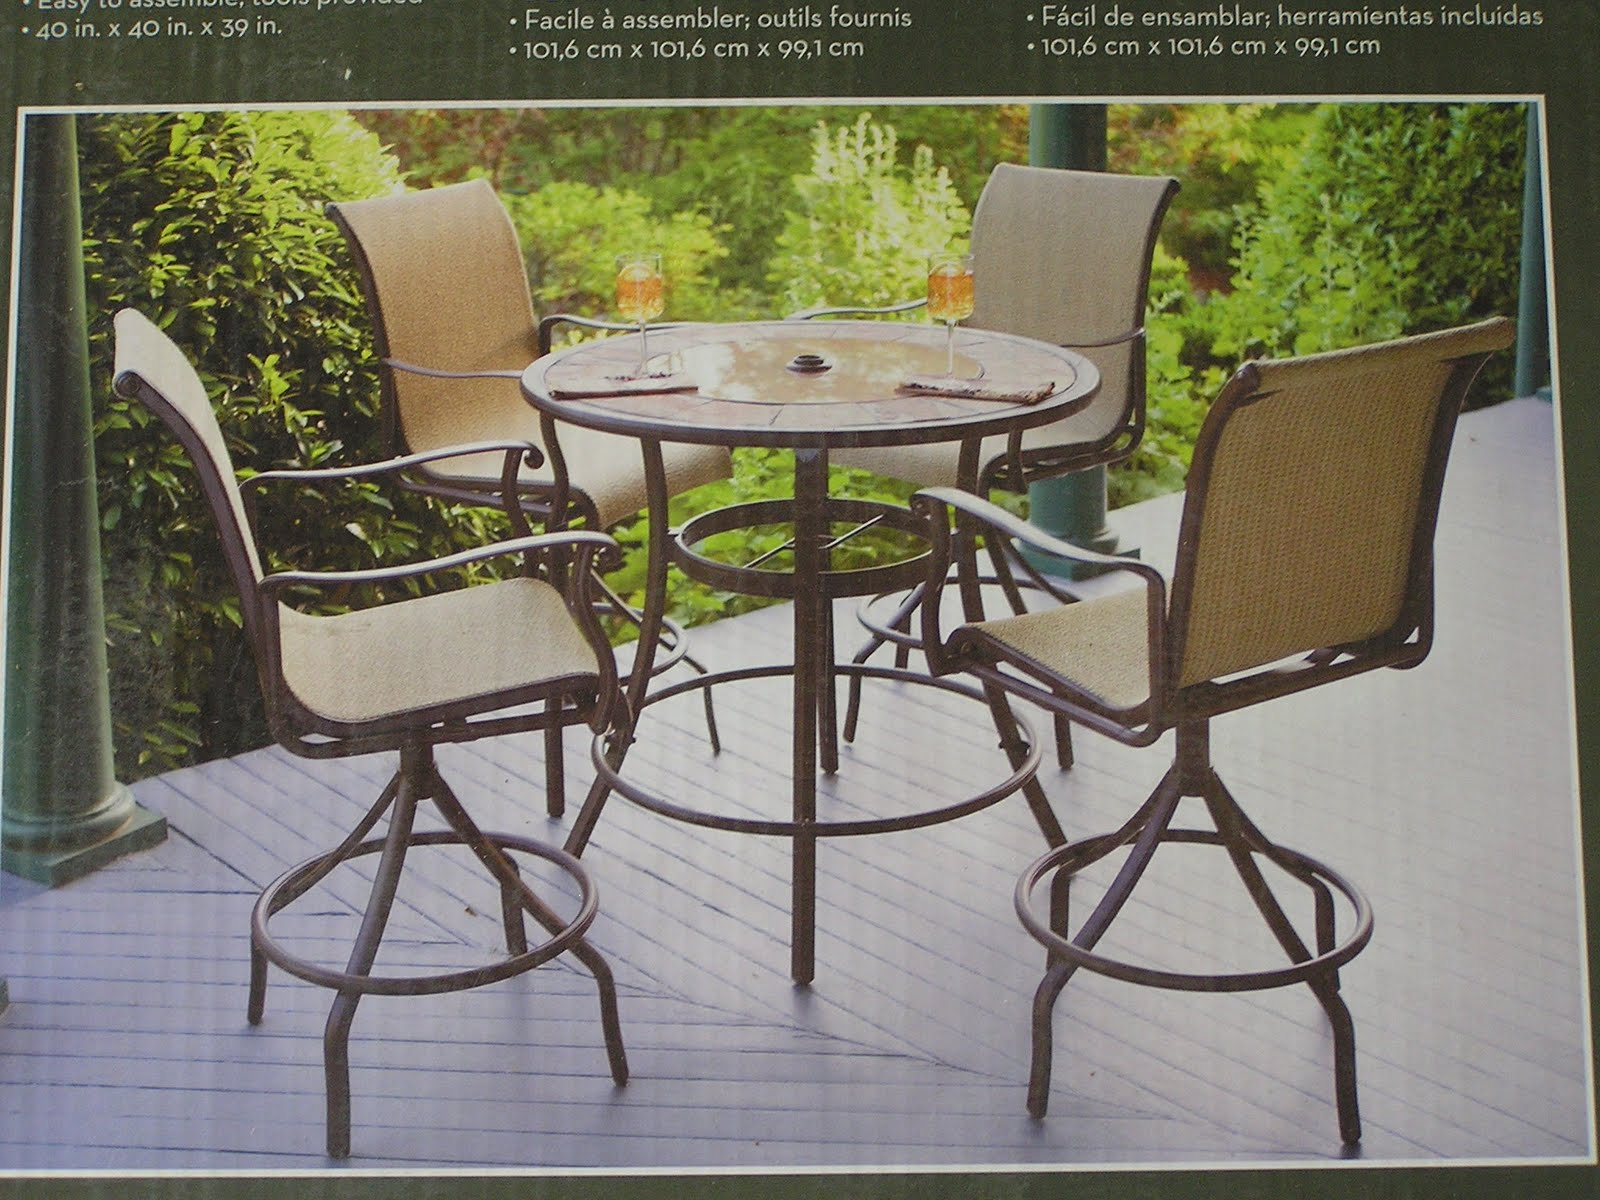 Patio table set patio design ideas for Terrace furniture